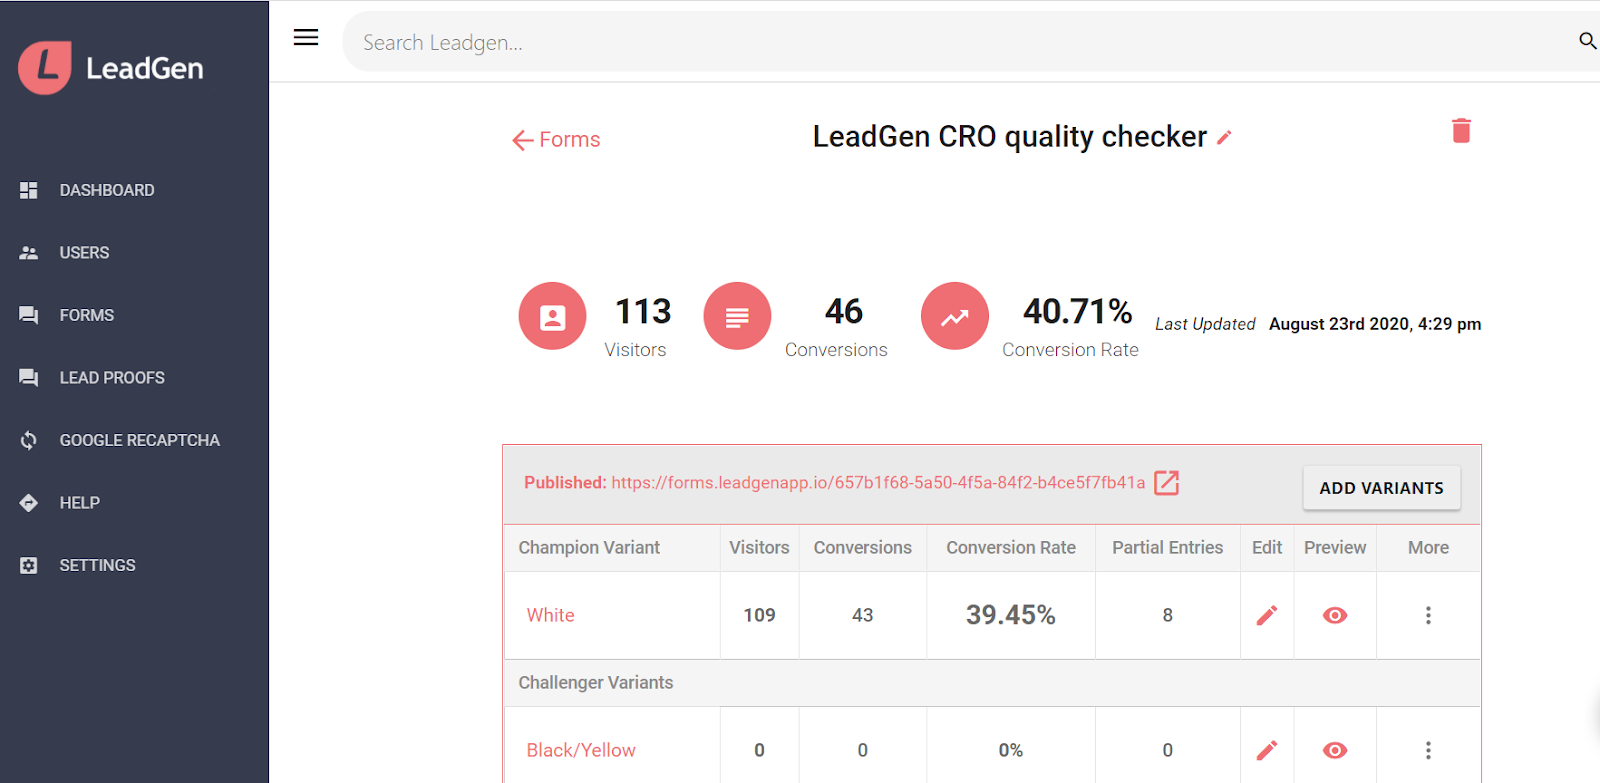 Form overview page - Key metrics